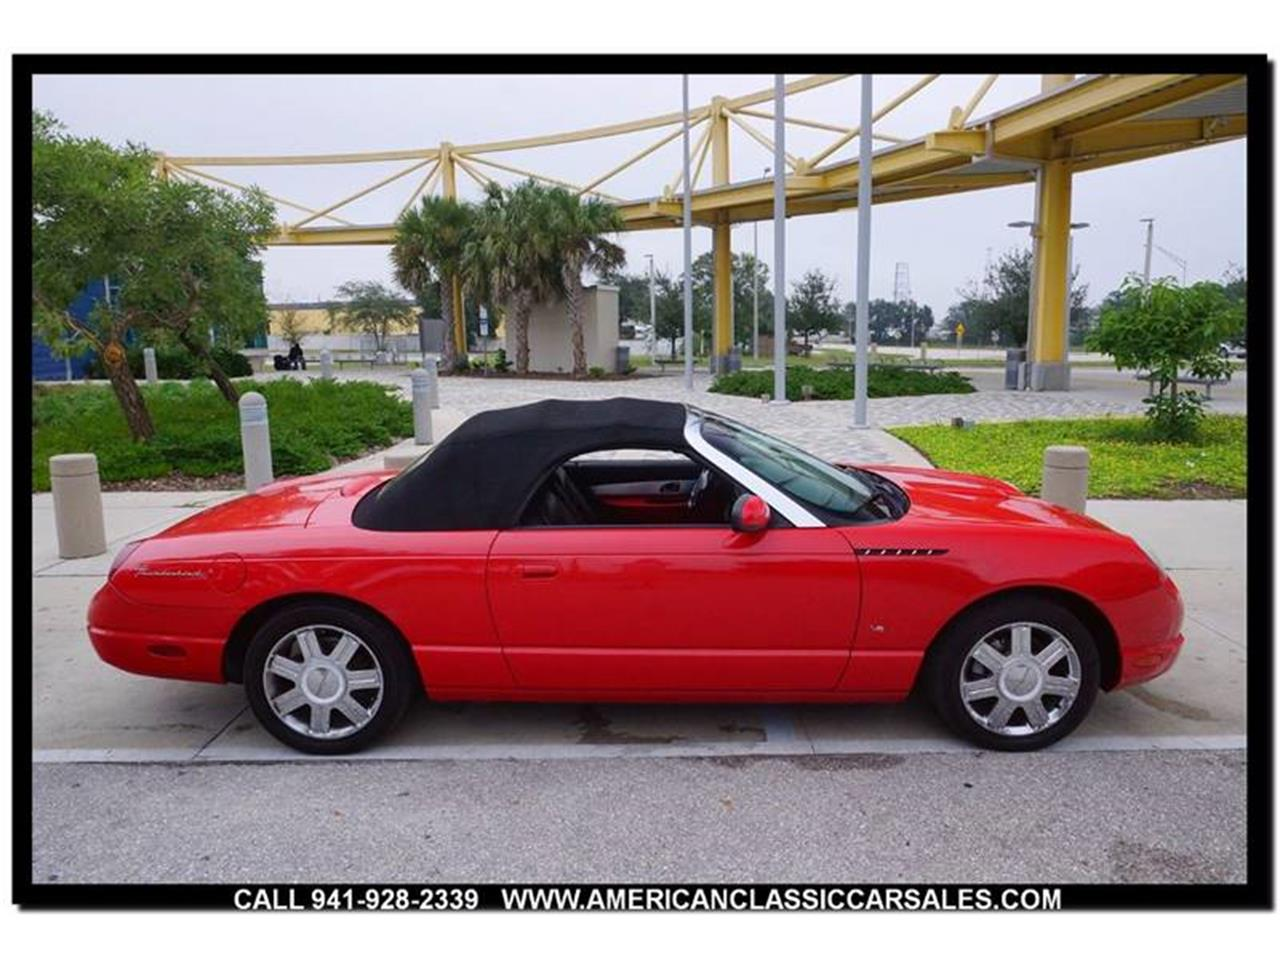 Large Picture of '04 Thunderbird located in Sarasota Florida - $12,440.00 - MCAN